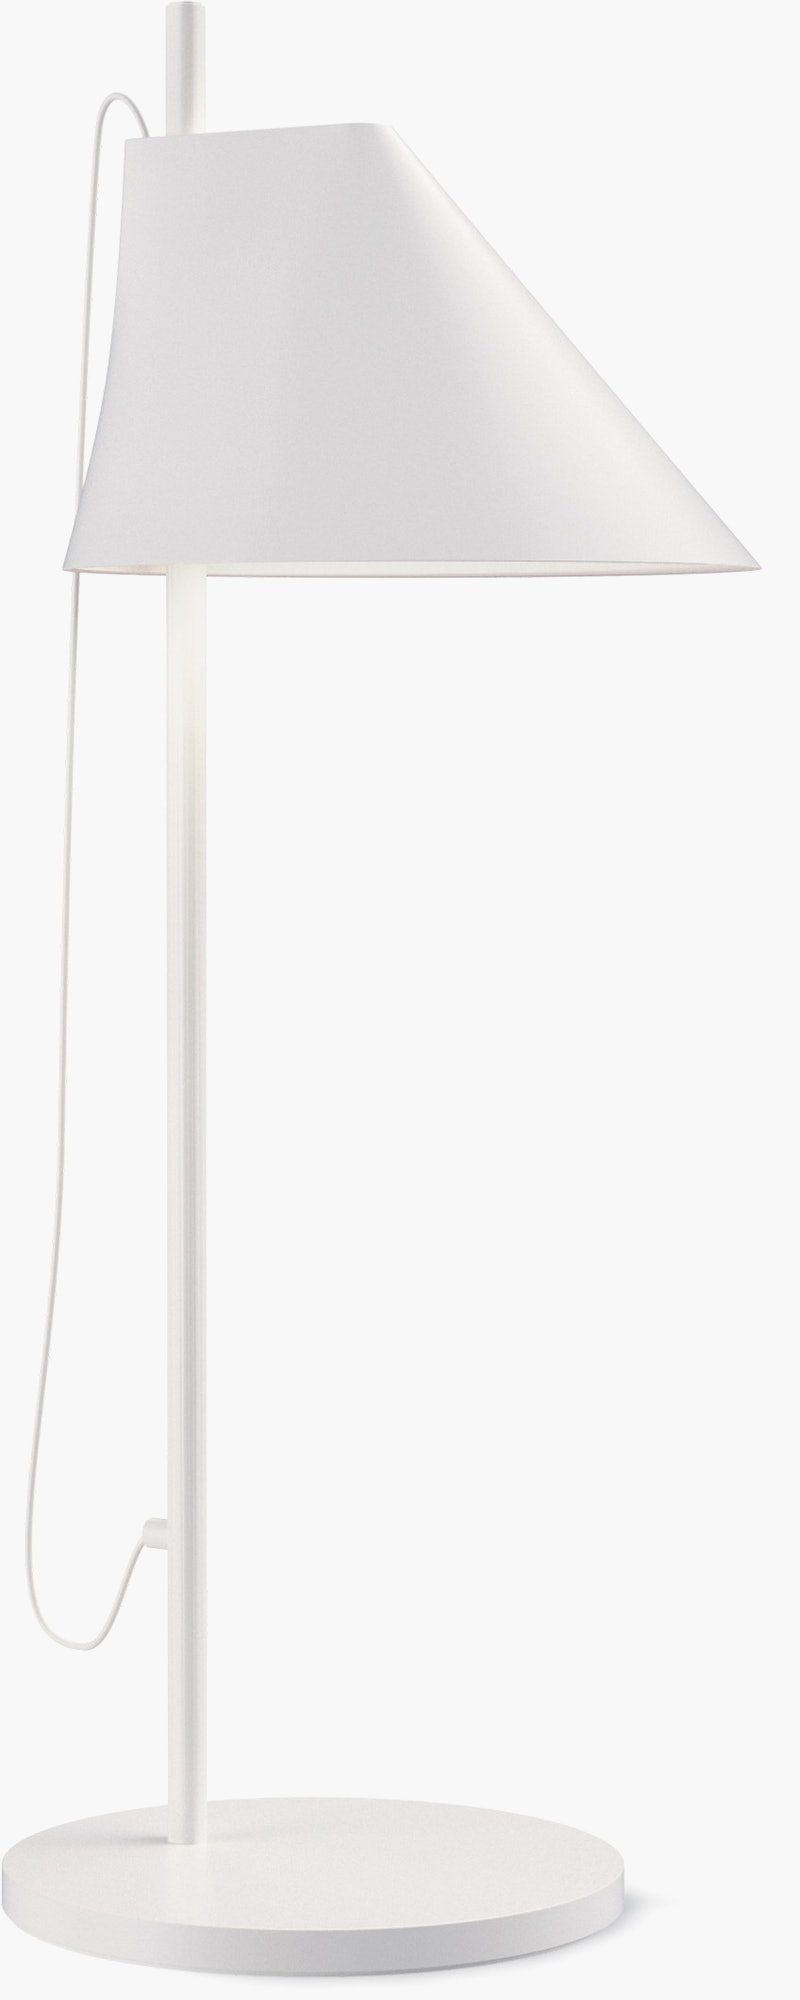 Yuh Table Lamp - Design Within Reach